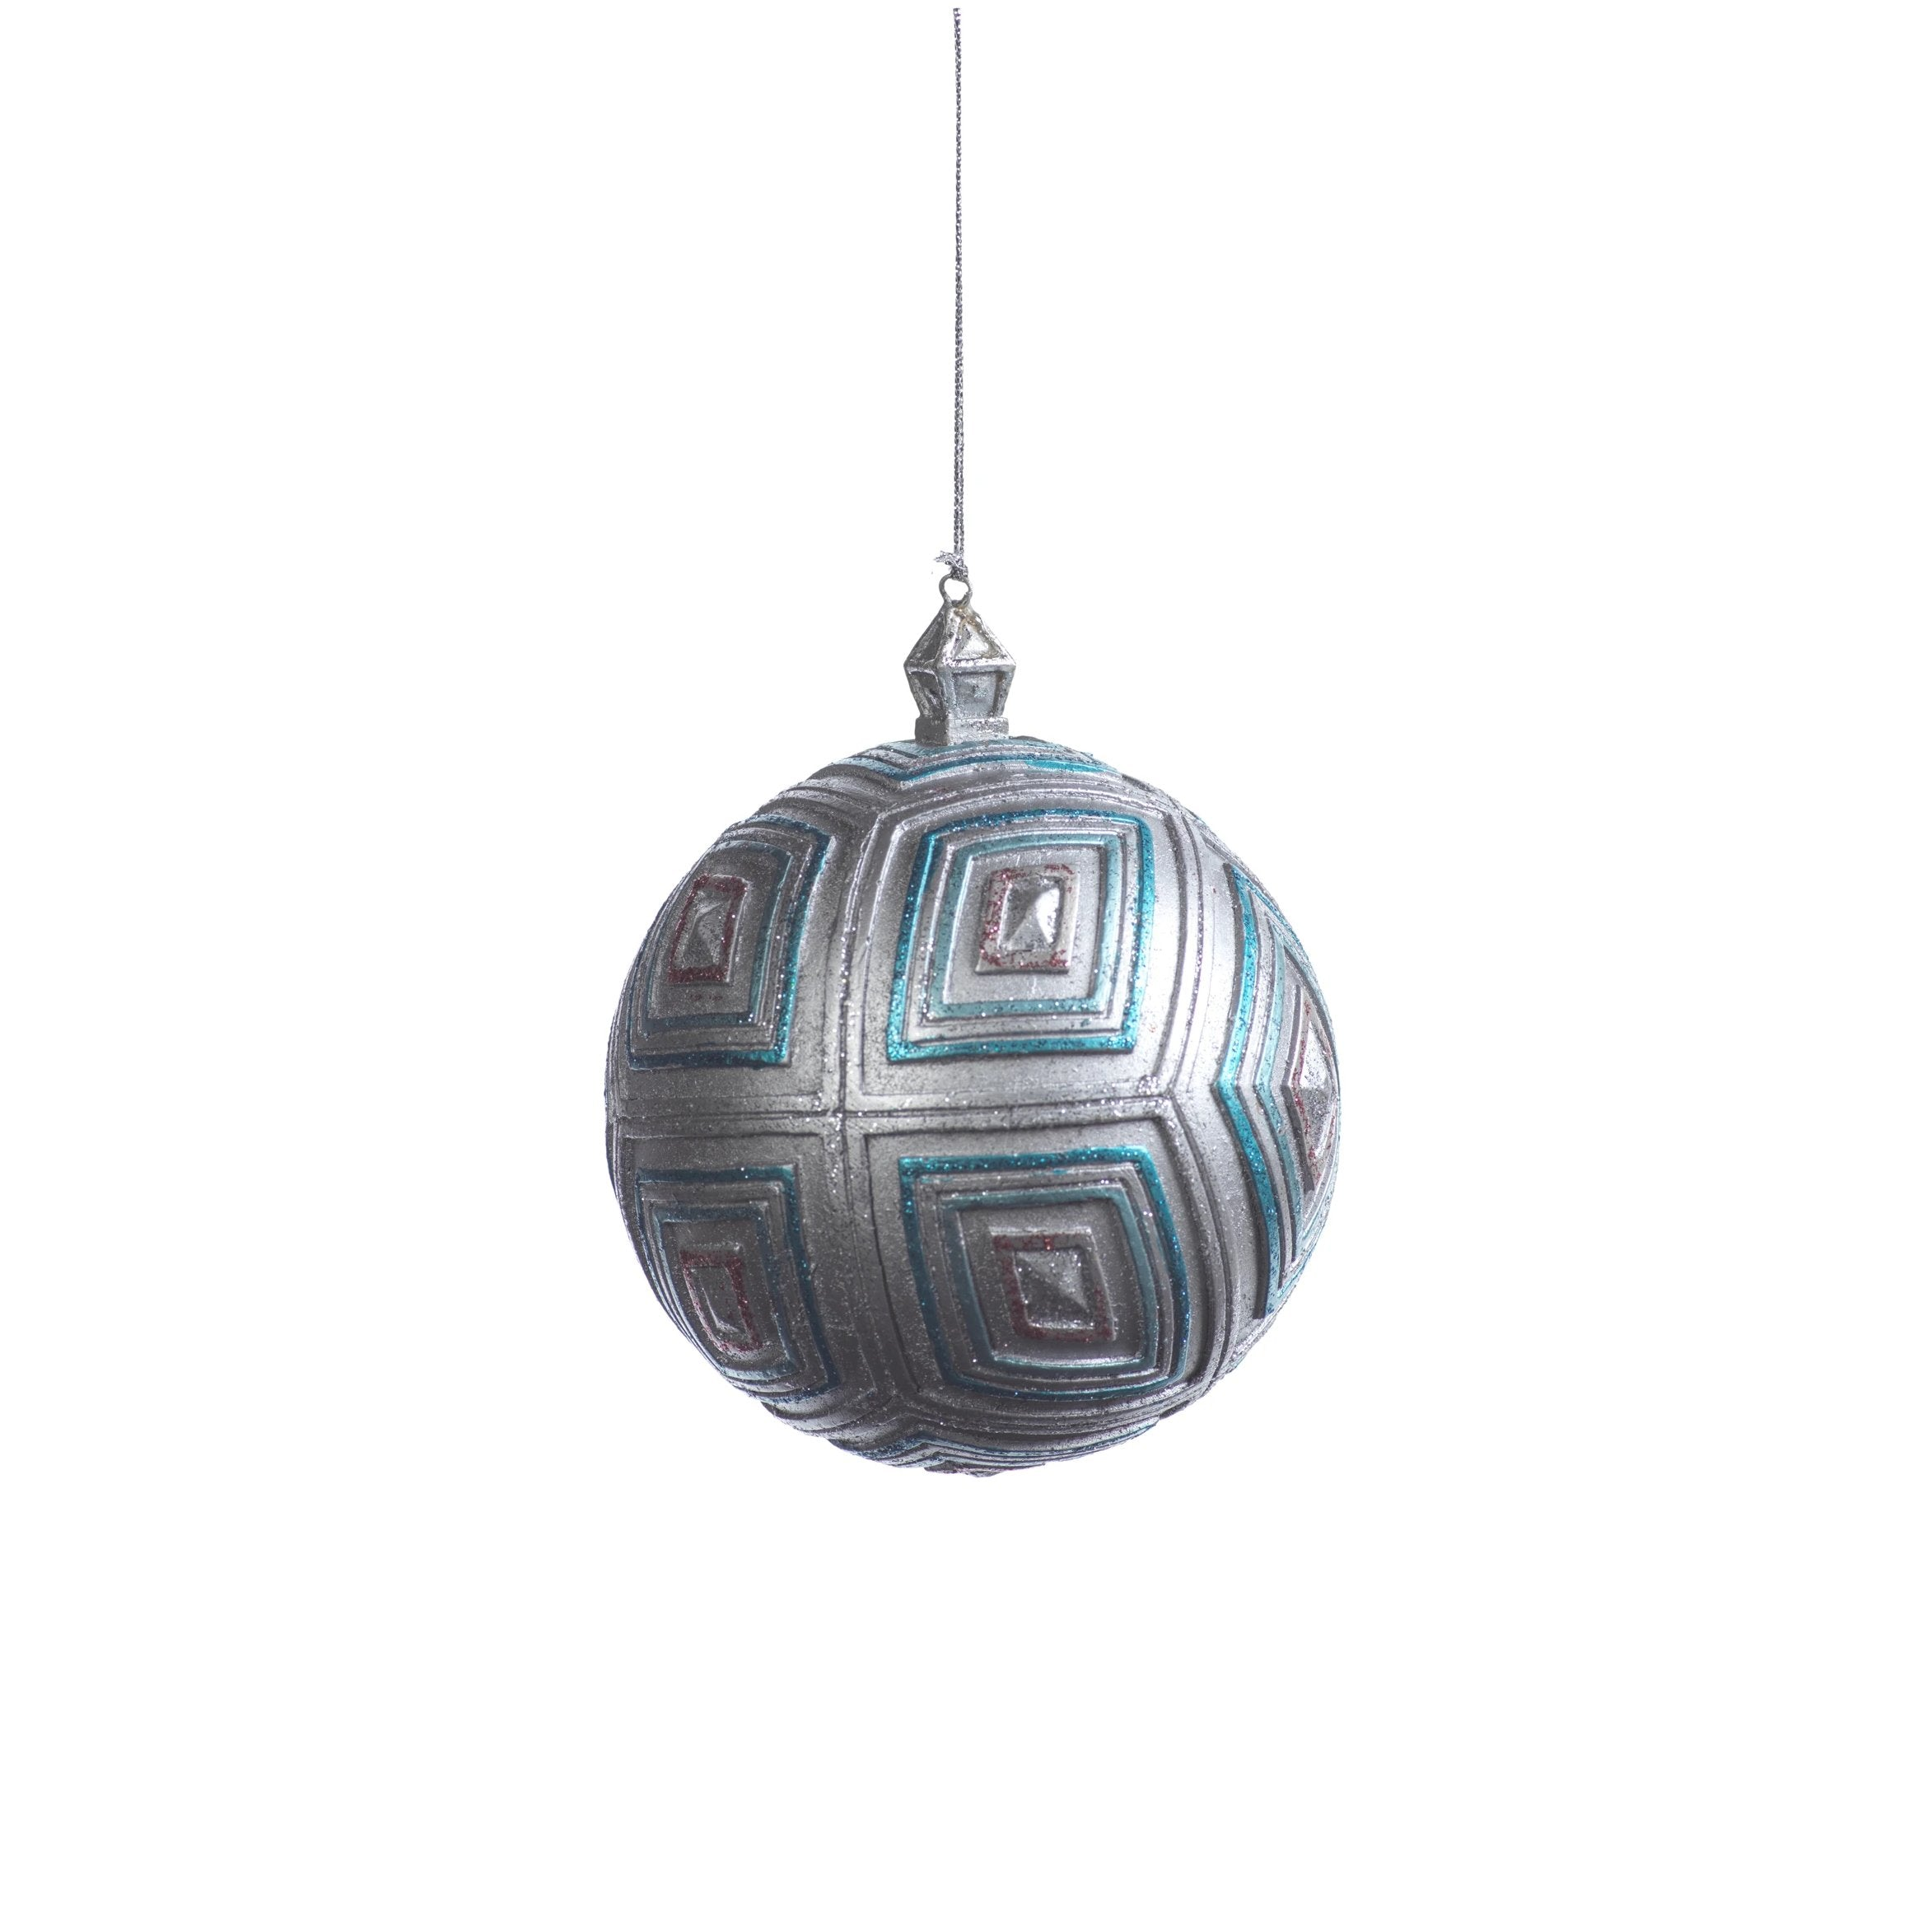 Kite Ball Ornament- Silver & Blue - CARLYLE AVENUE